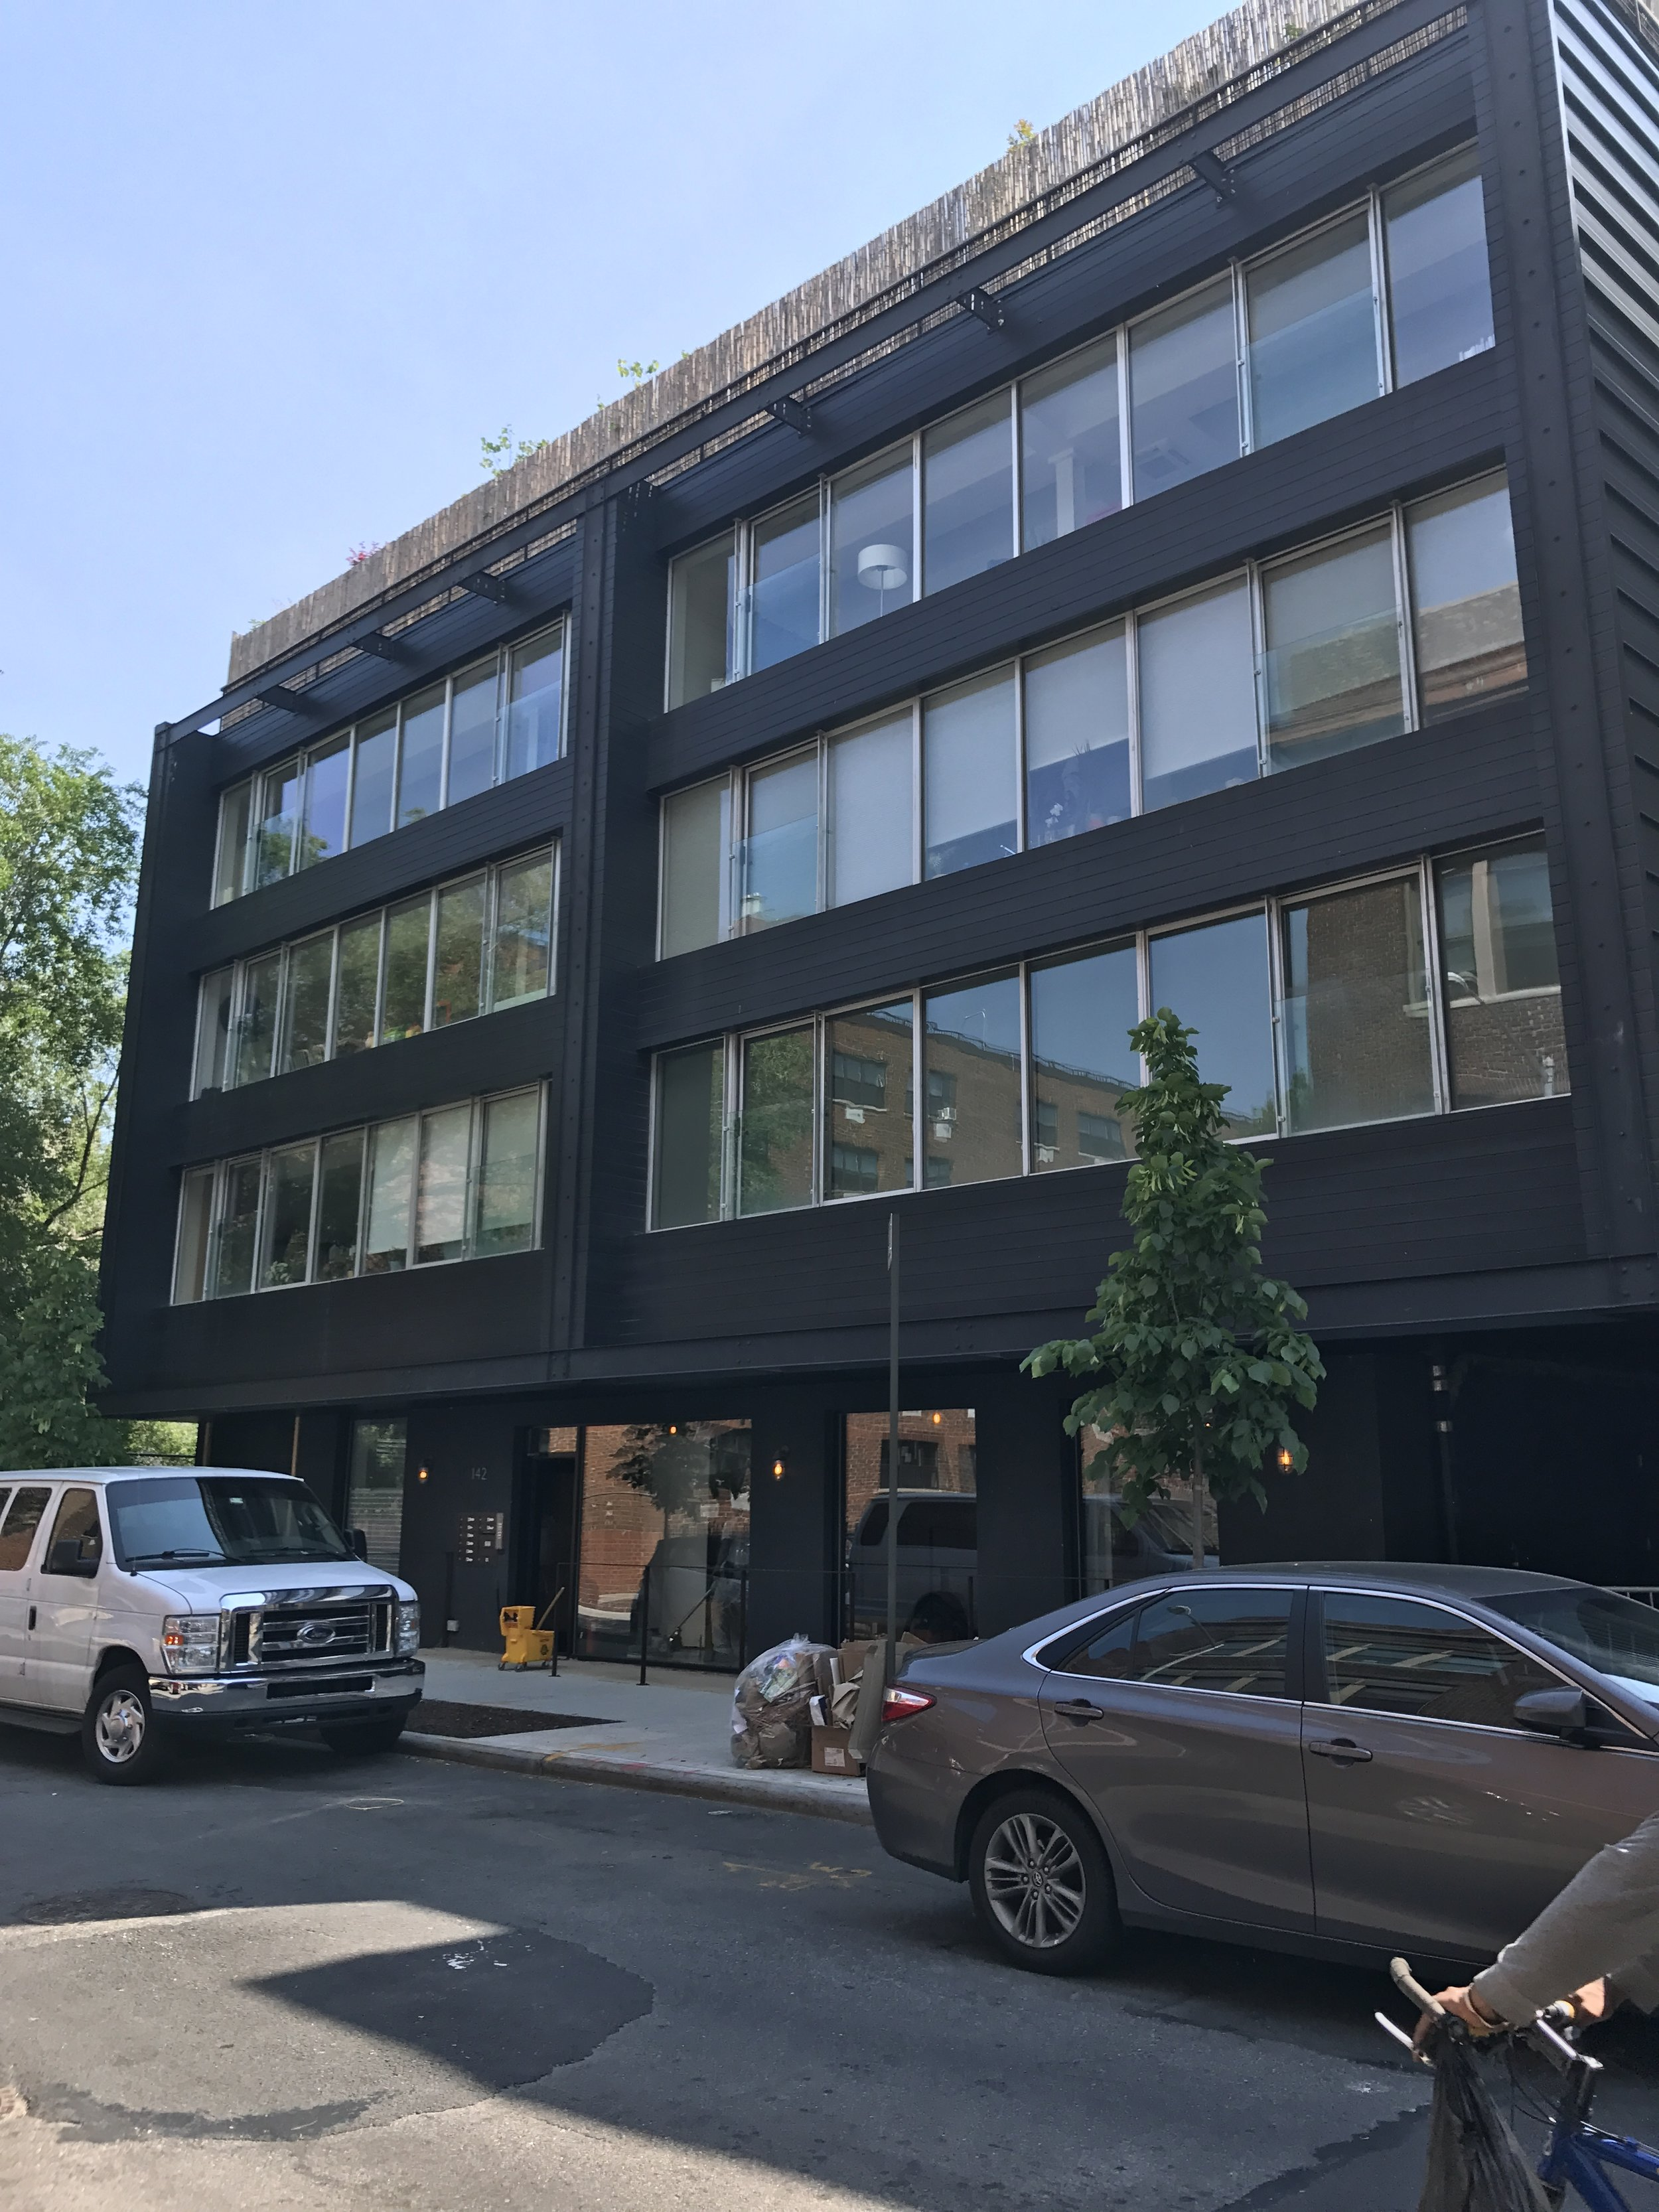 142 North 1st Street - RVA Architecture, LLC5 story mixed use building